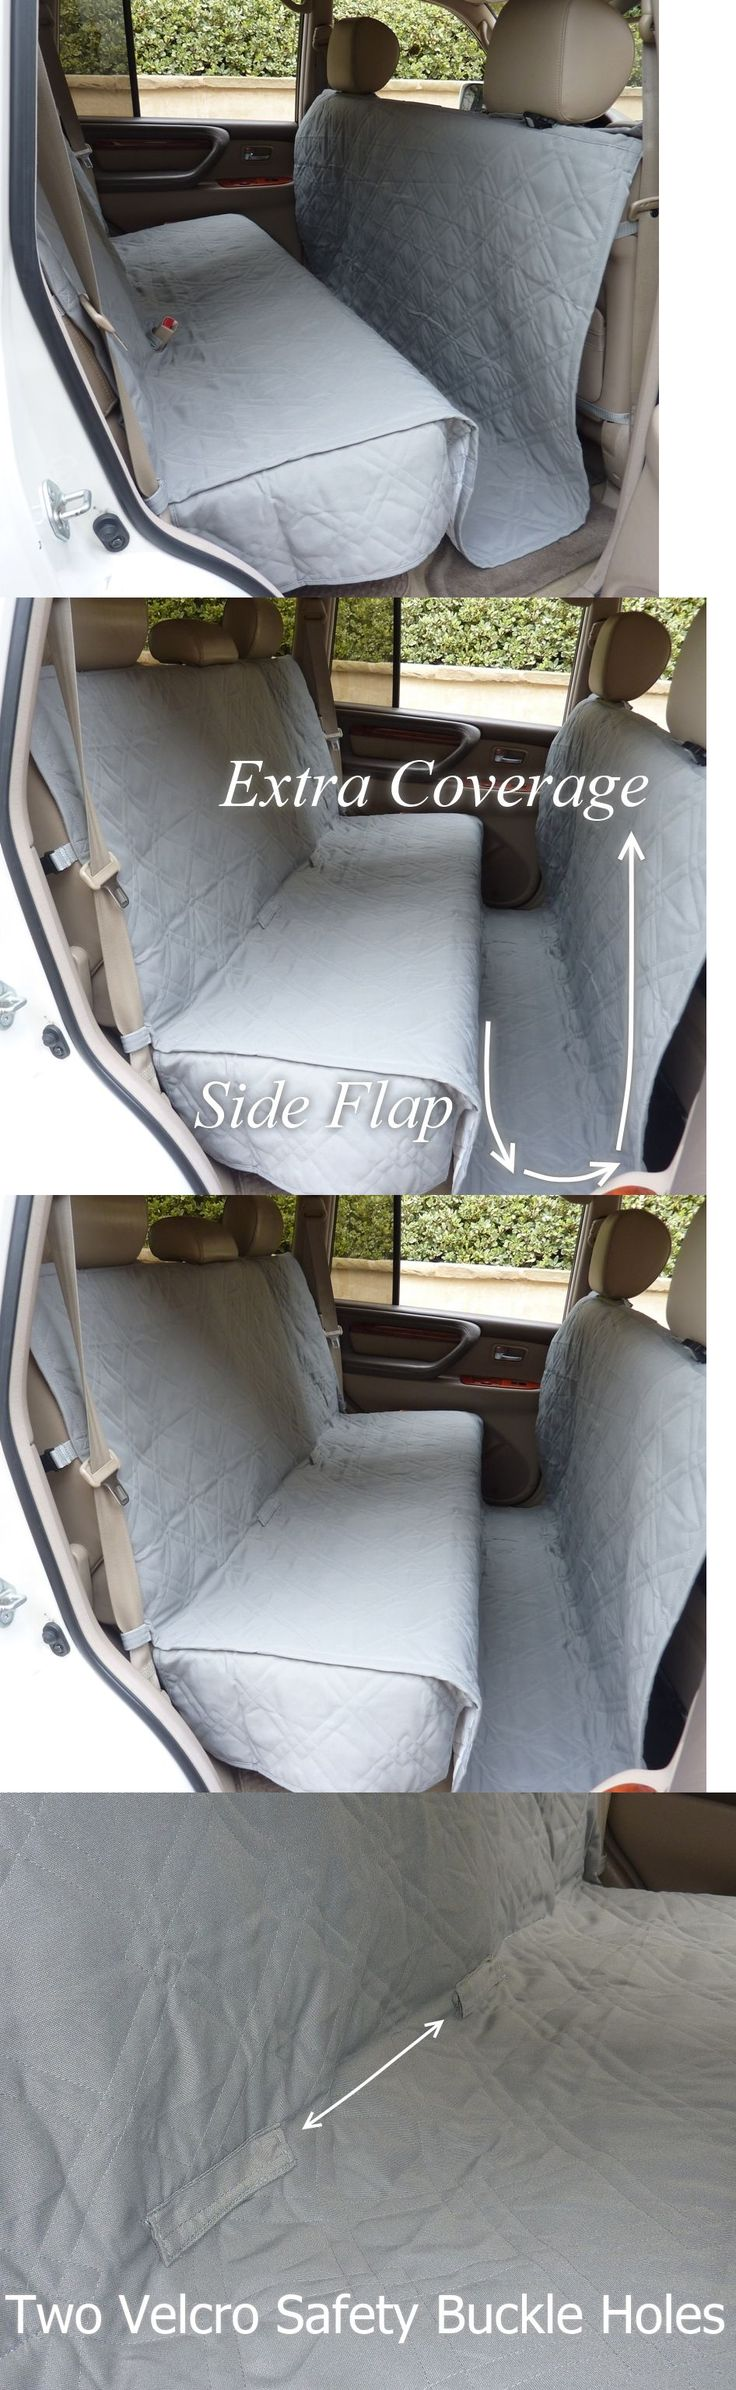 SUVs: Suv Truck Car Back Seat Cover For Dogs And Cats. Quilted And Padded. Gray. New -> BUY IT NOW ONLY: $26.99 on eBay!